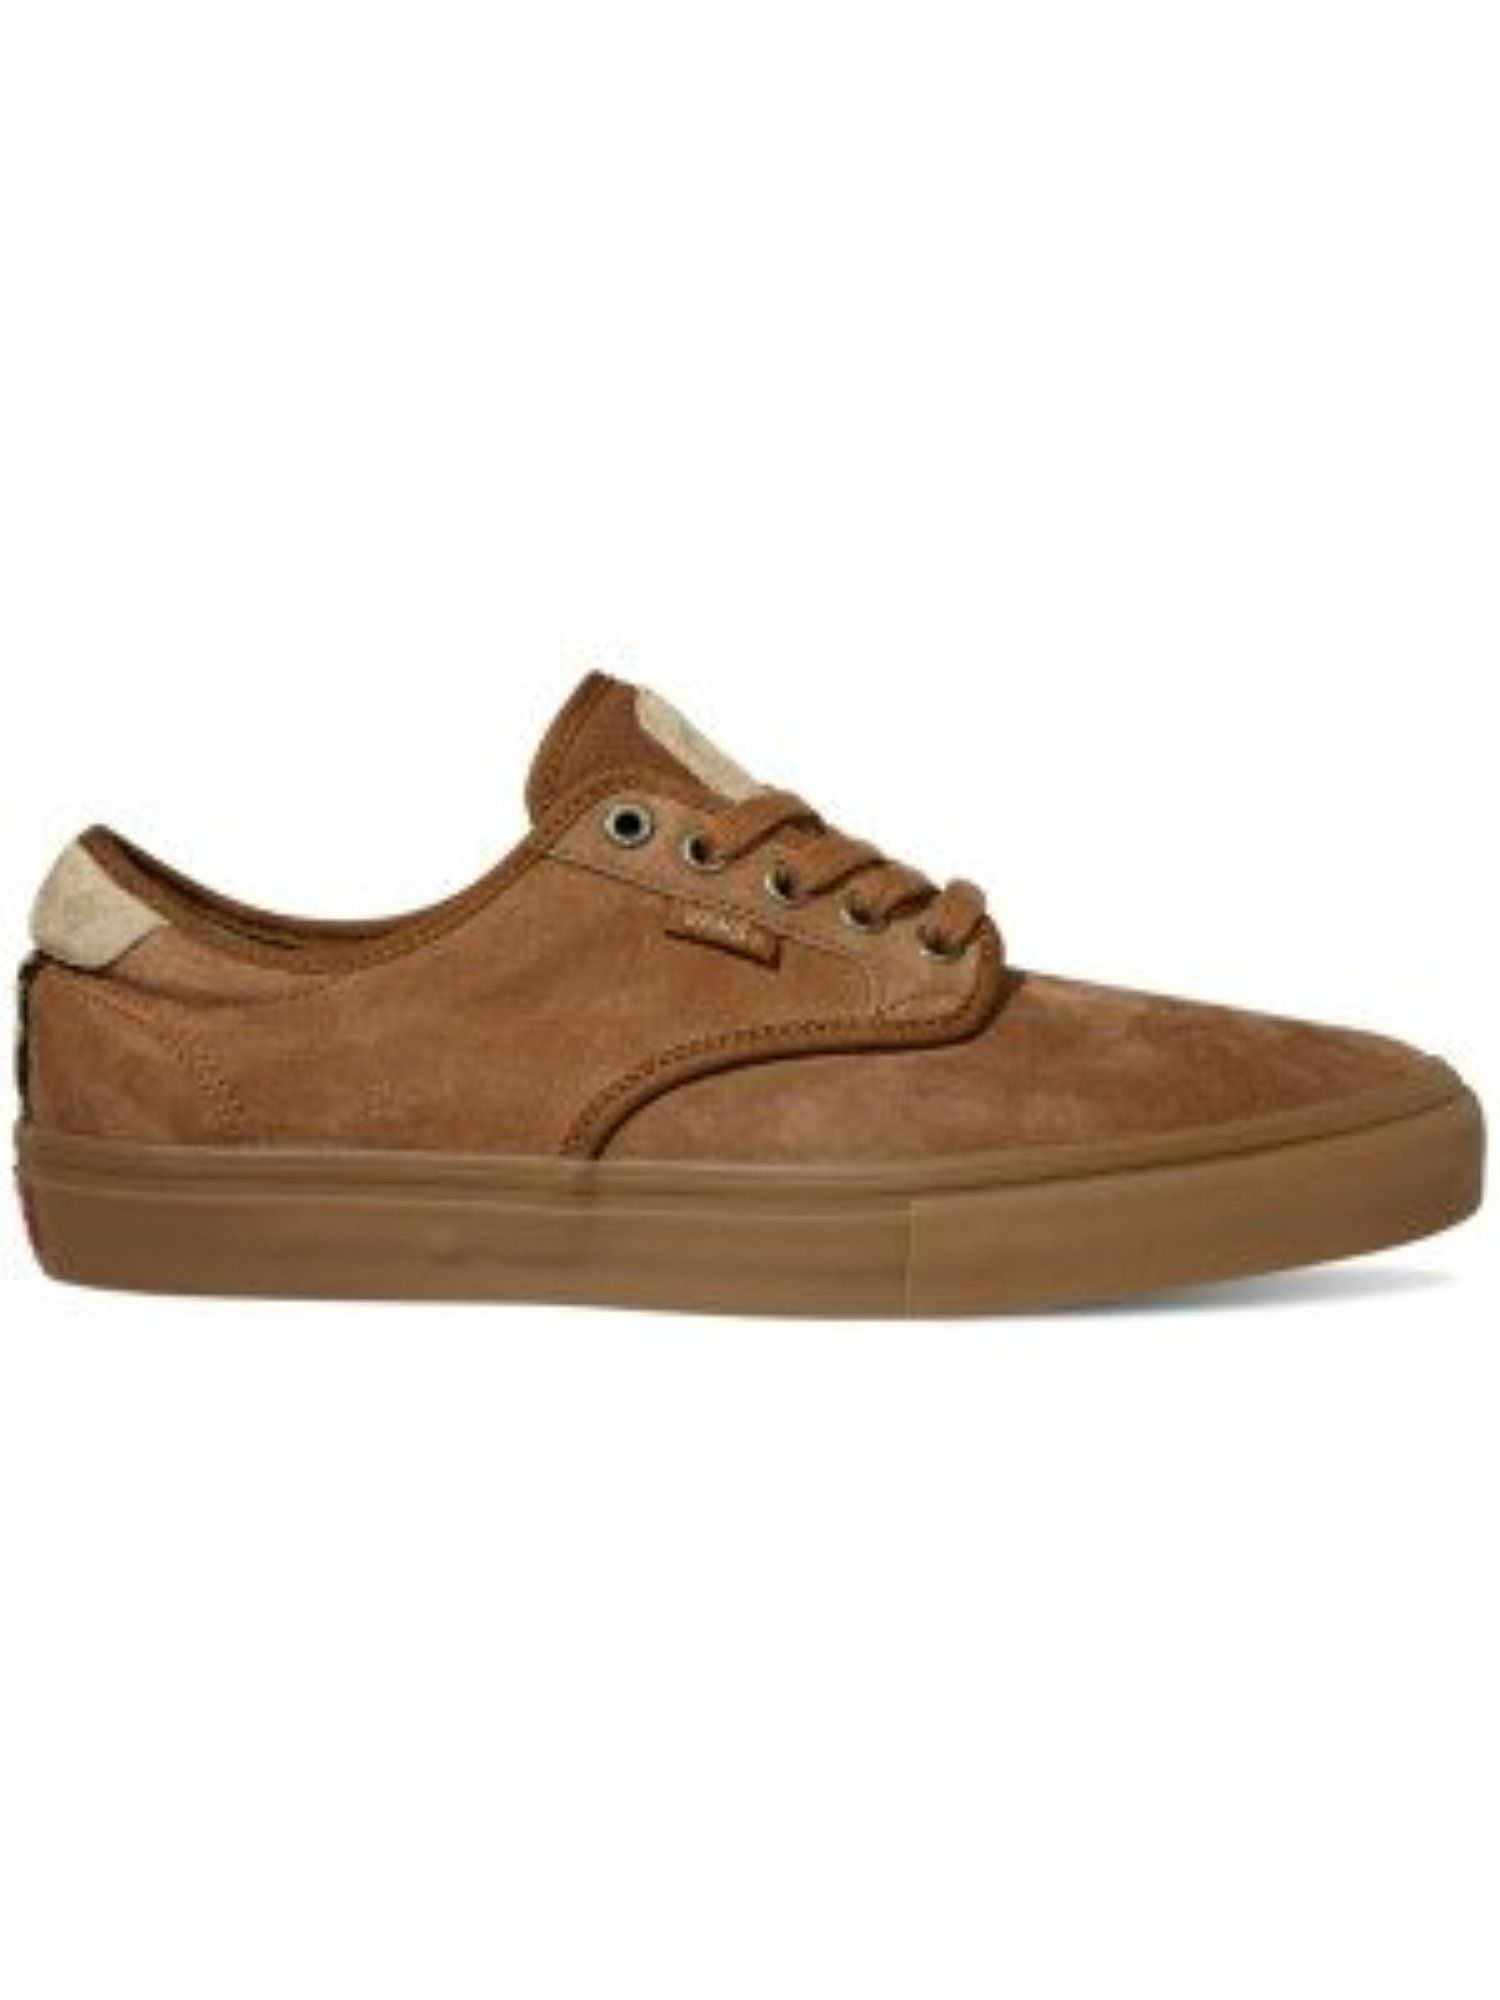 aa4a59c9a8a Vans Chima Ferguson Pro Mens Skate Shoes (9.5 D(M) US Mens